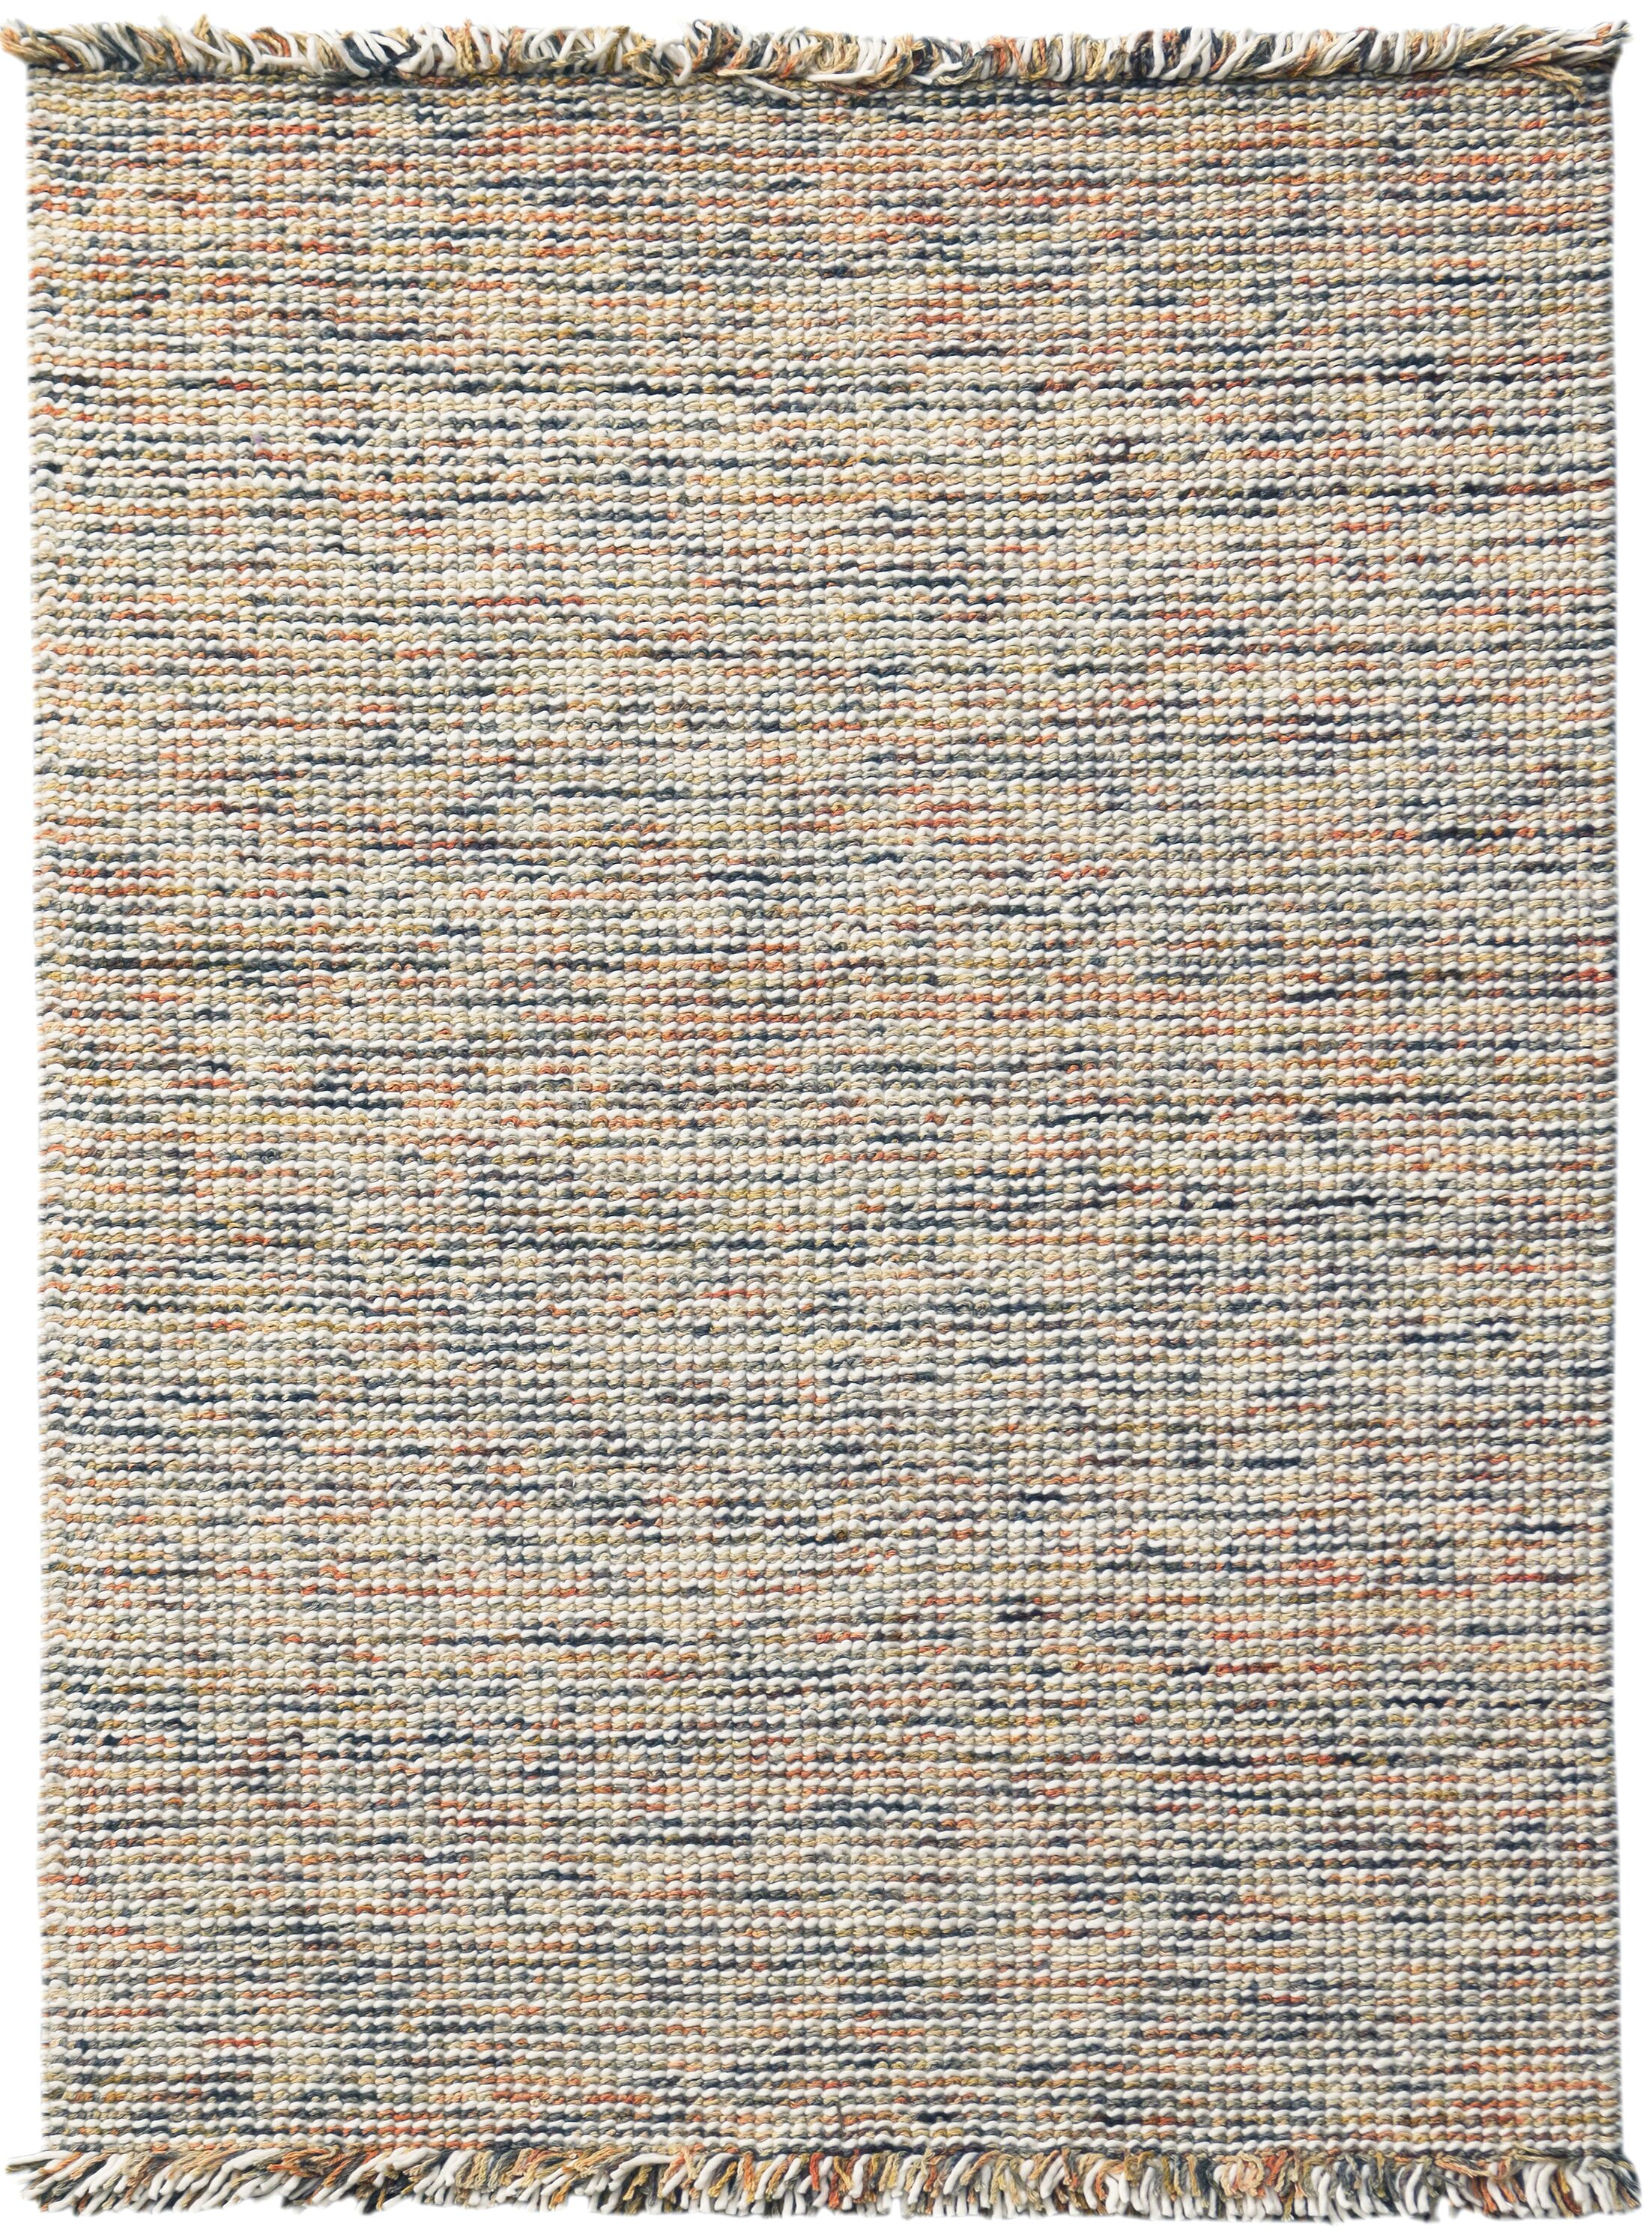 Louth Casual Handwoven Wool/Cotton Orange Area Rug Rug Size: Rectangle 9' x 12'